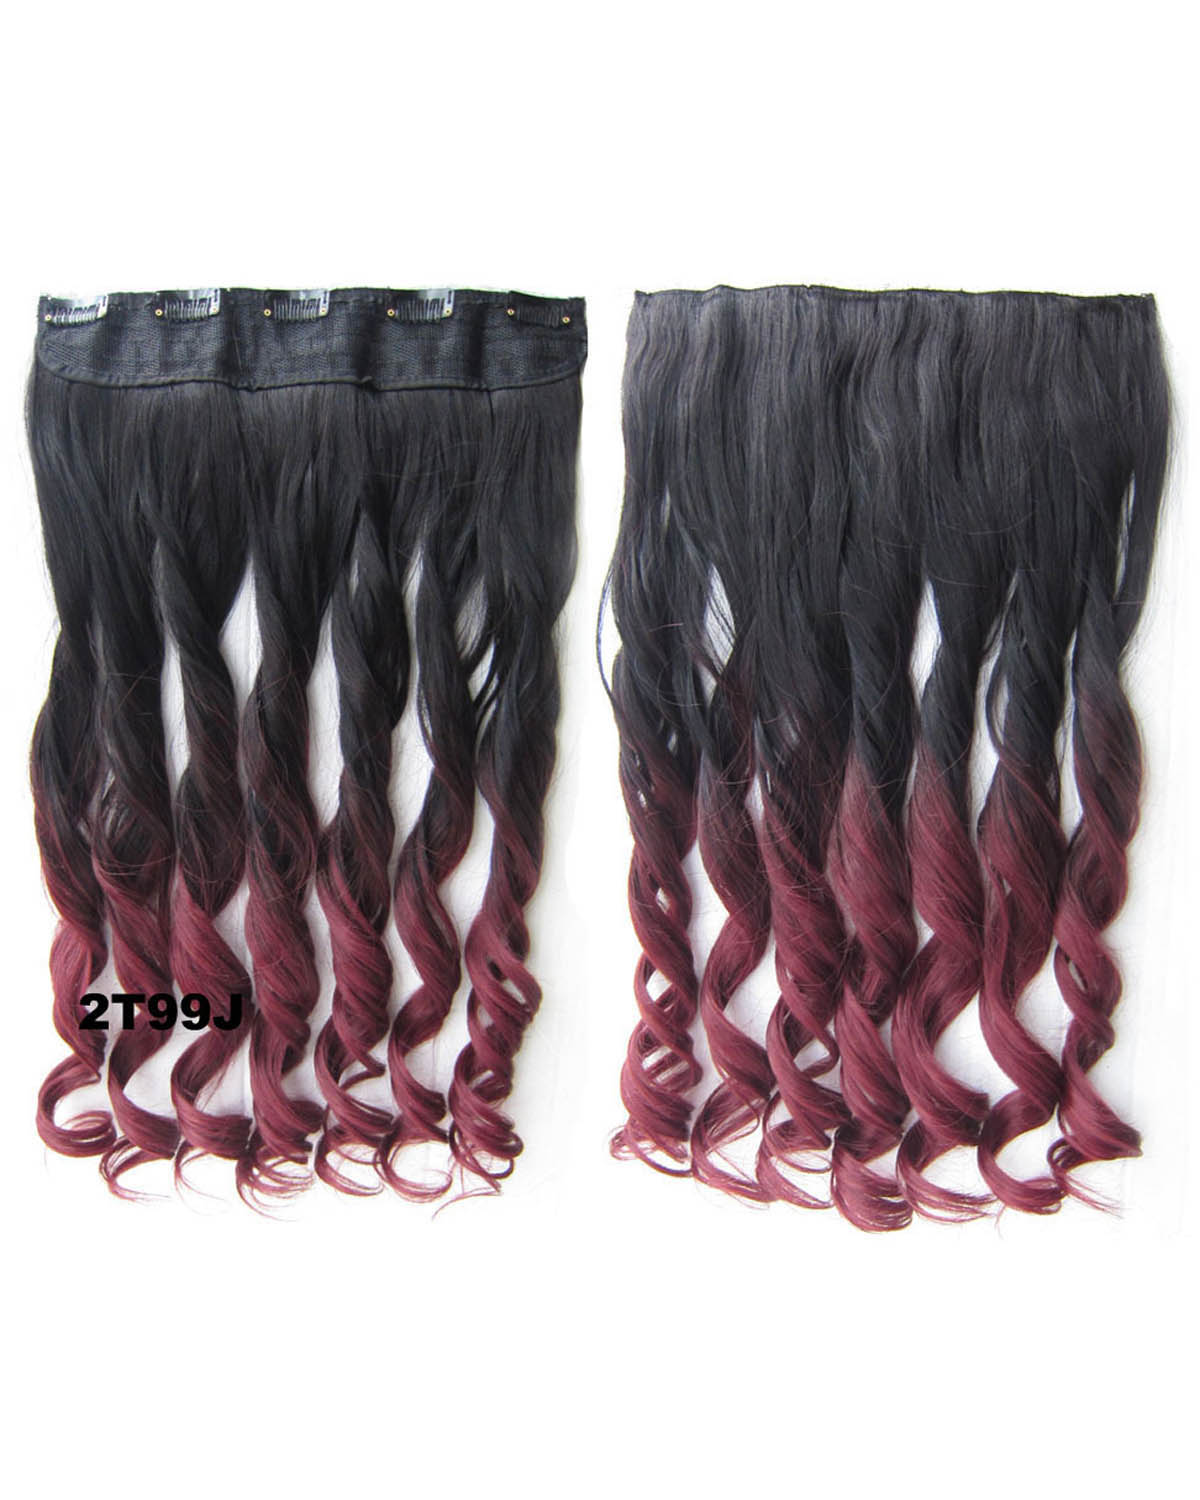 24 Inch Female Salable and Glowing Body Wave Curly Long One Piece 5 Clips Clip in Synthetic Hair Extension Ombre 2T99J